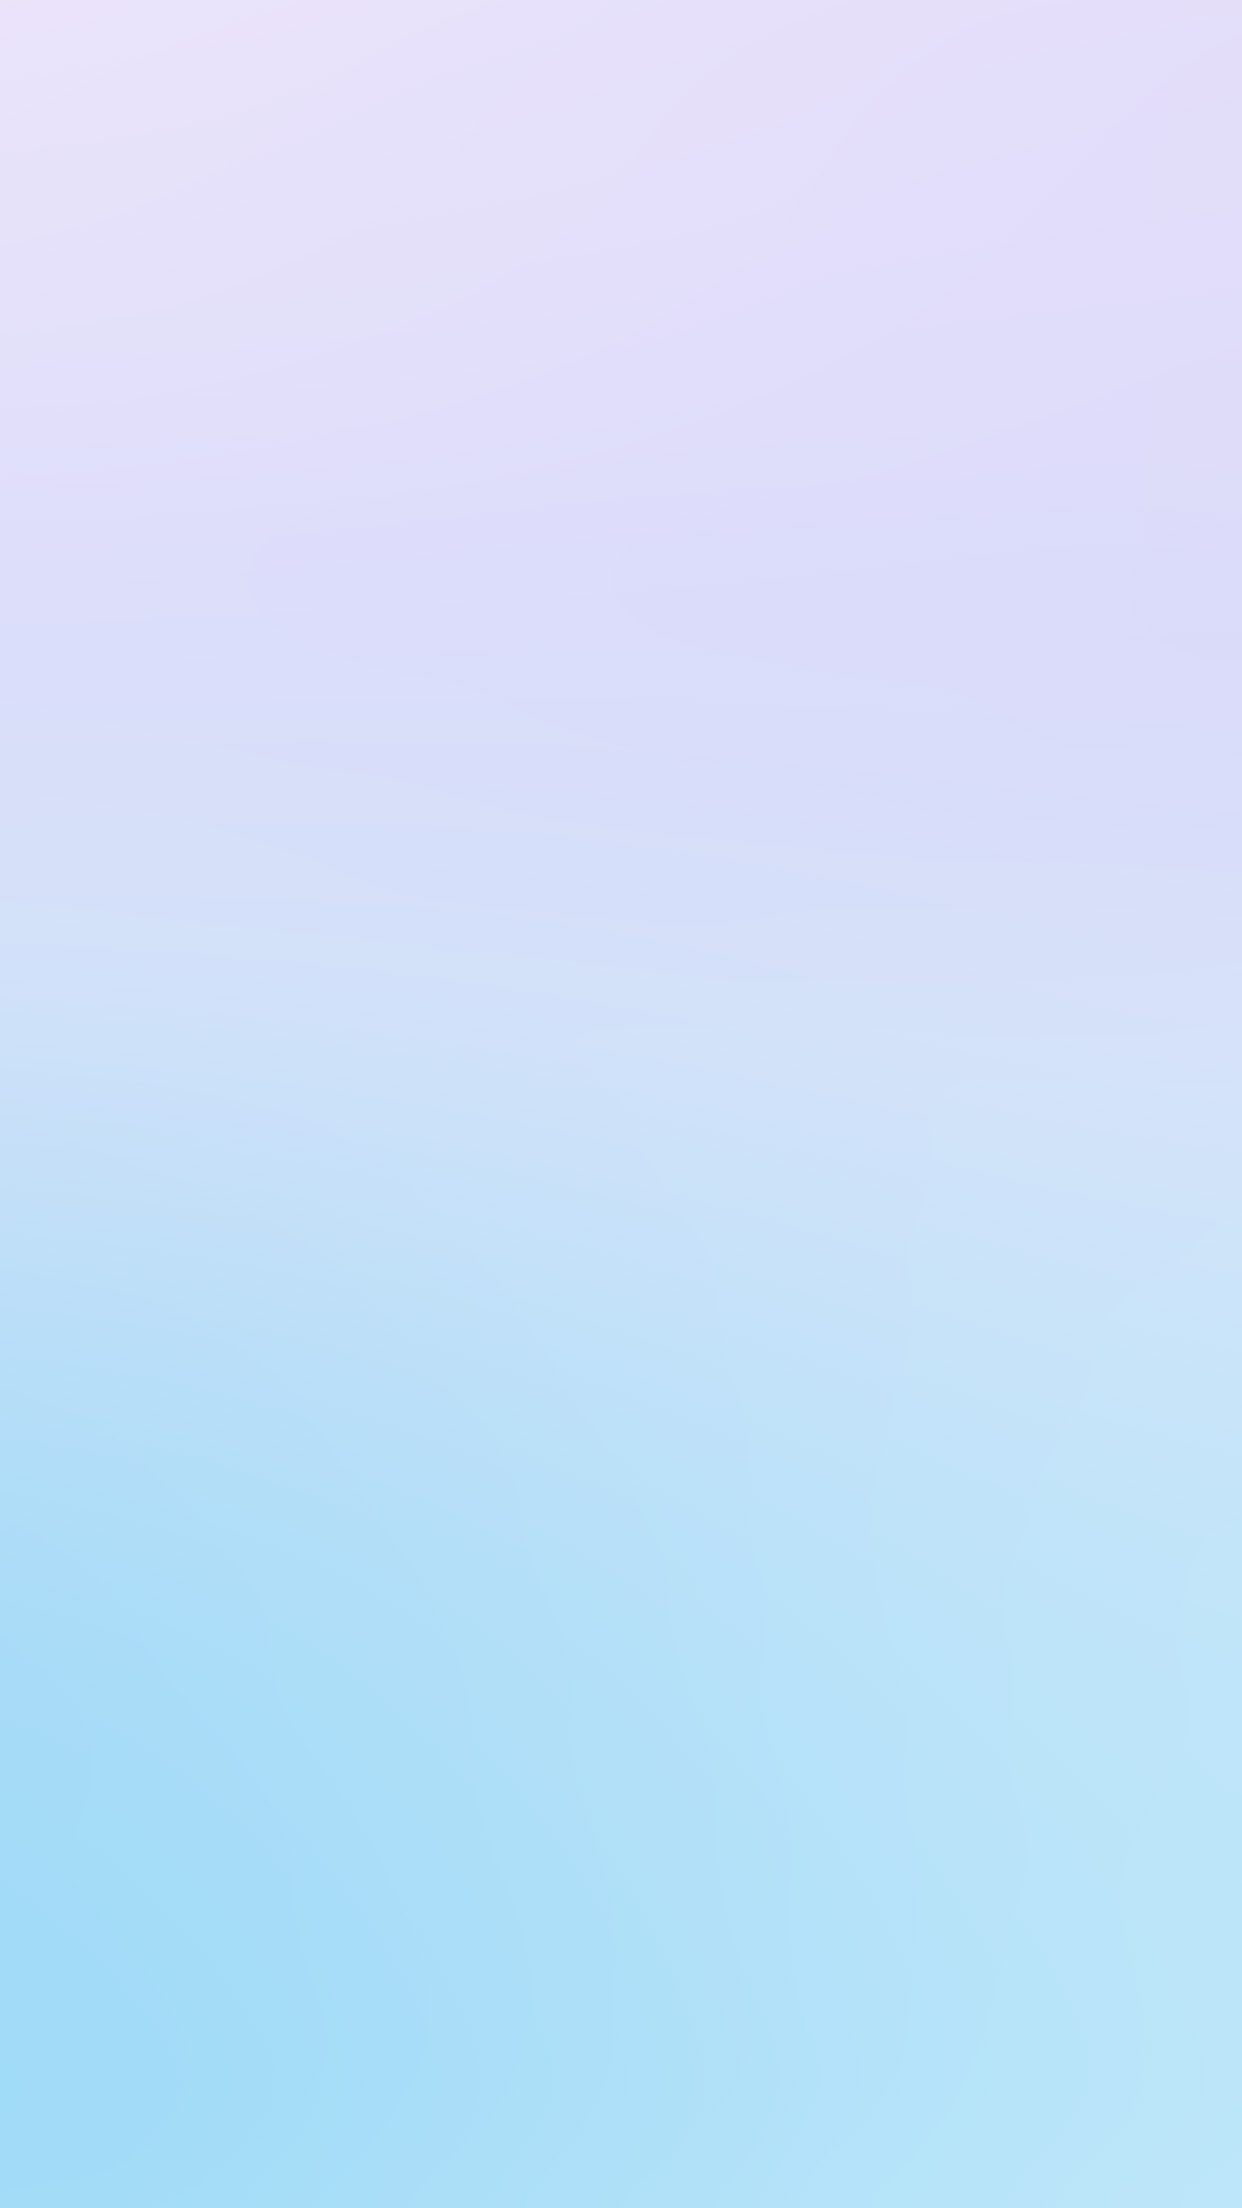 Sk13 Cute Blue Blur Gradation Wallpaper